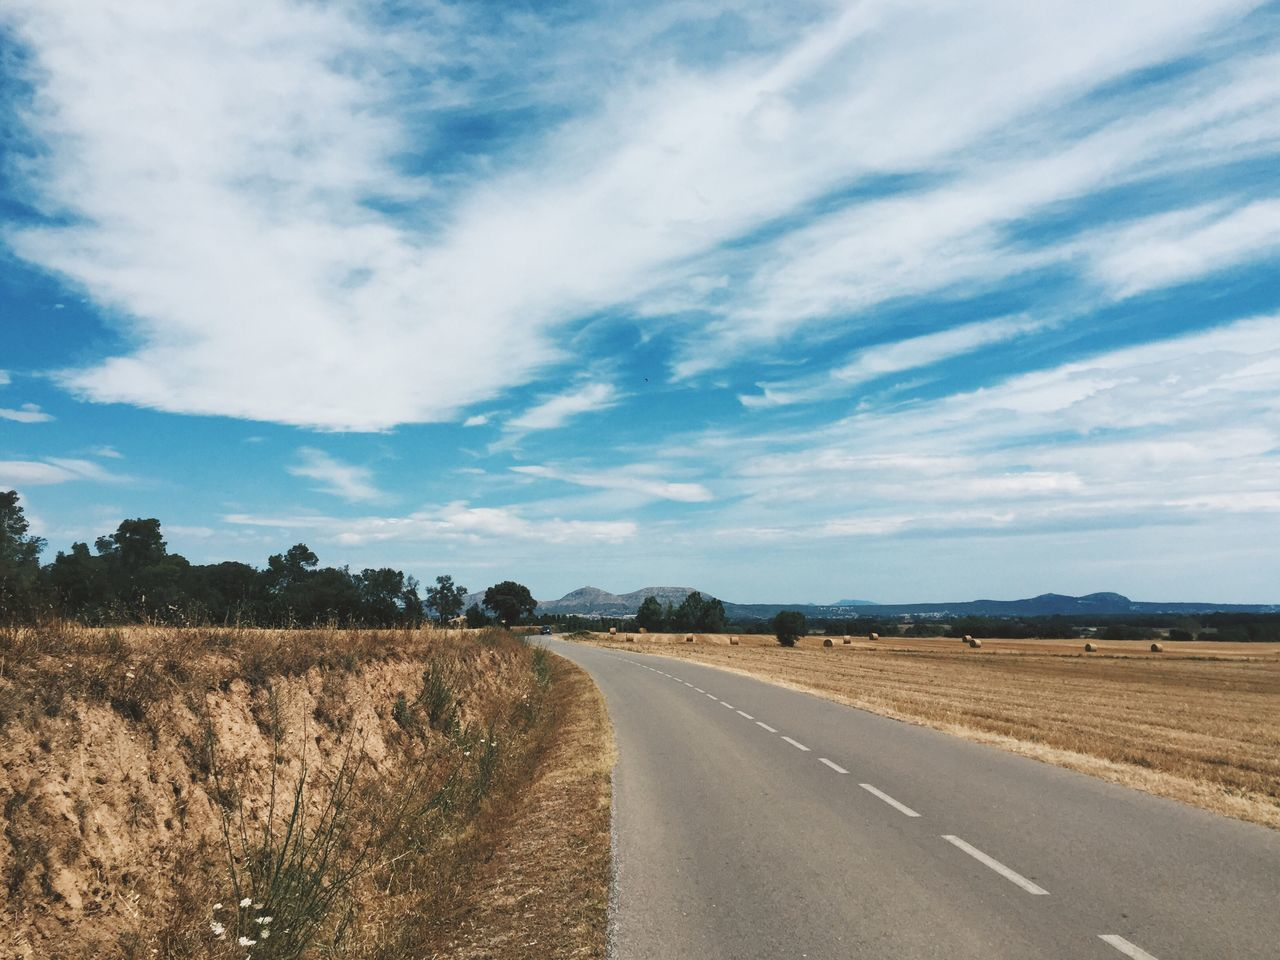 The Journey Is The Destination Check This Out Nature Trip Road Roadtrip Way Way To Go Home Cloudy Clouds And Sky Sky Sky And Clouds Landscape Outdoors Catalunya L'Empordà Costa Brava Mountains